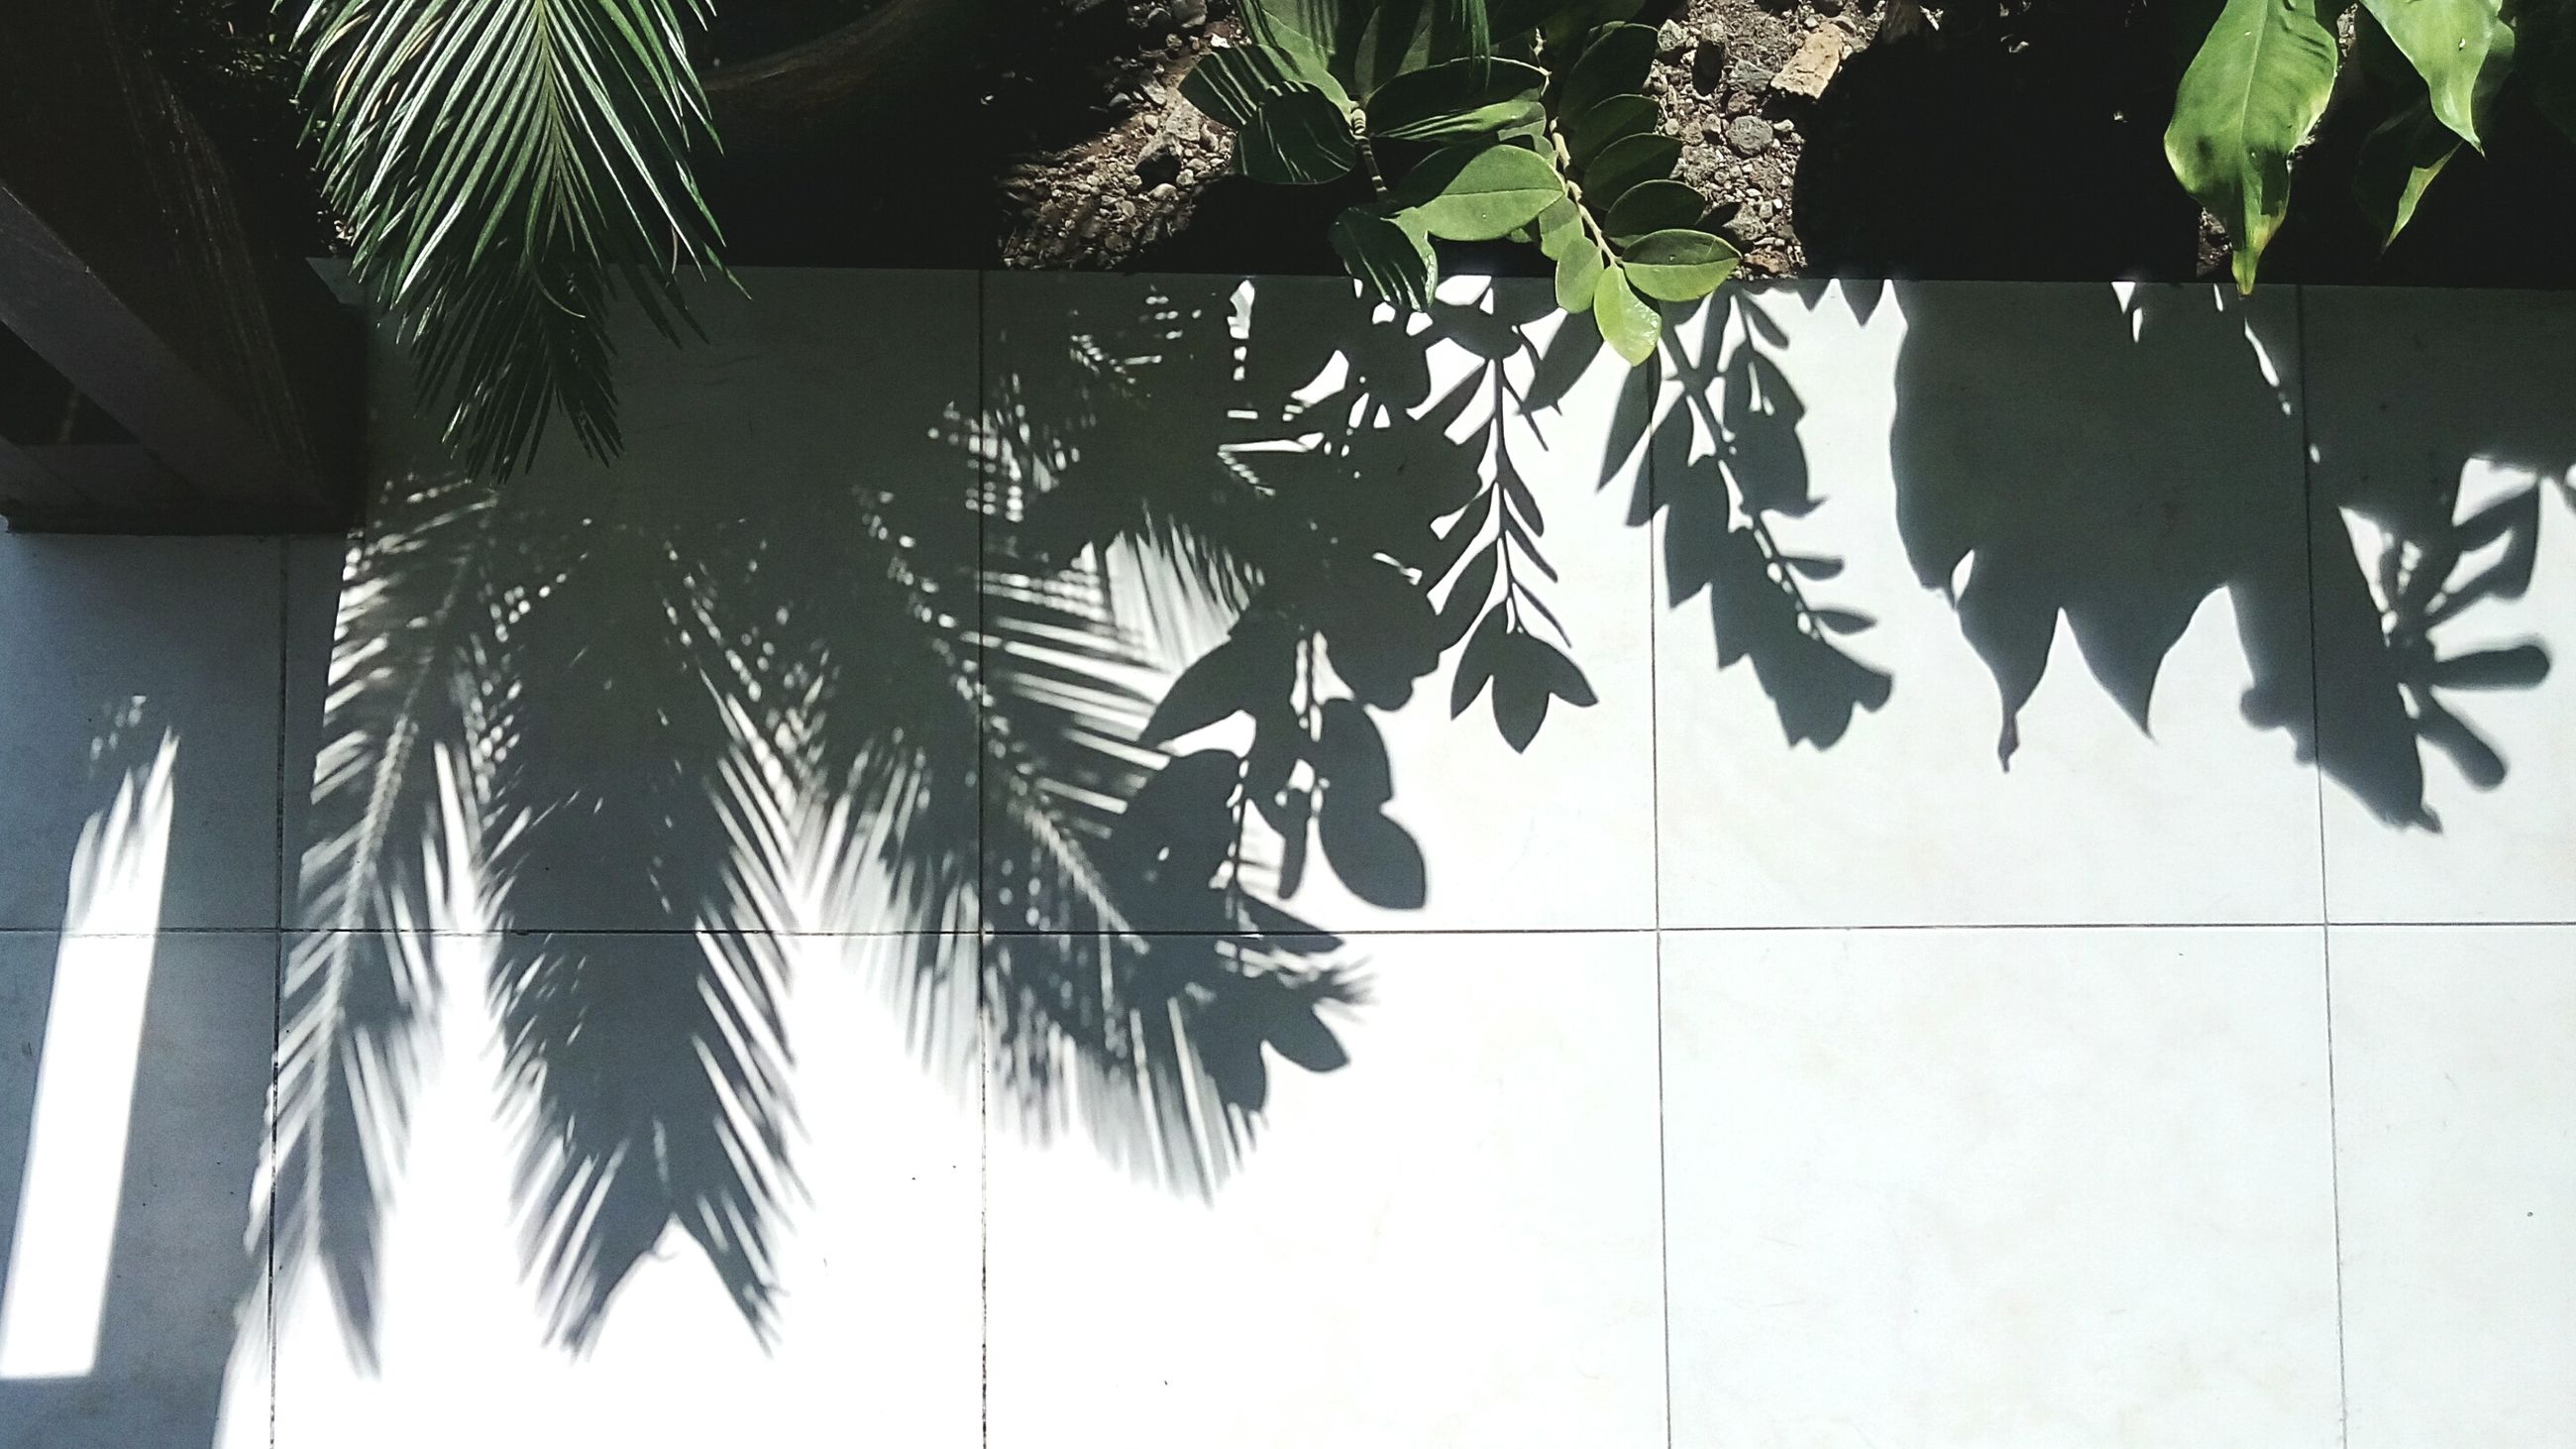 leaf, low angle view, palm tree, tree, growth, hanging, day, plant, no people, green color, indoors, nature, close-up